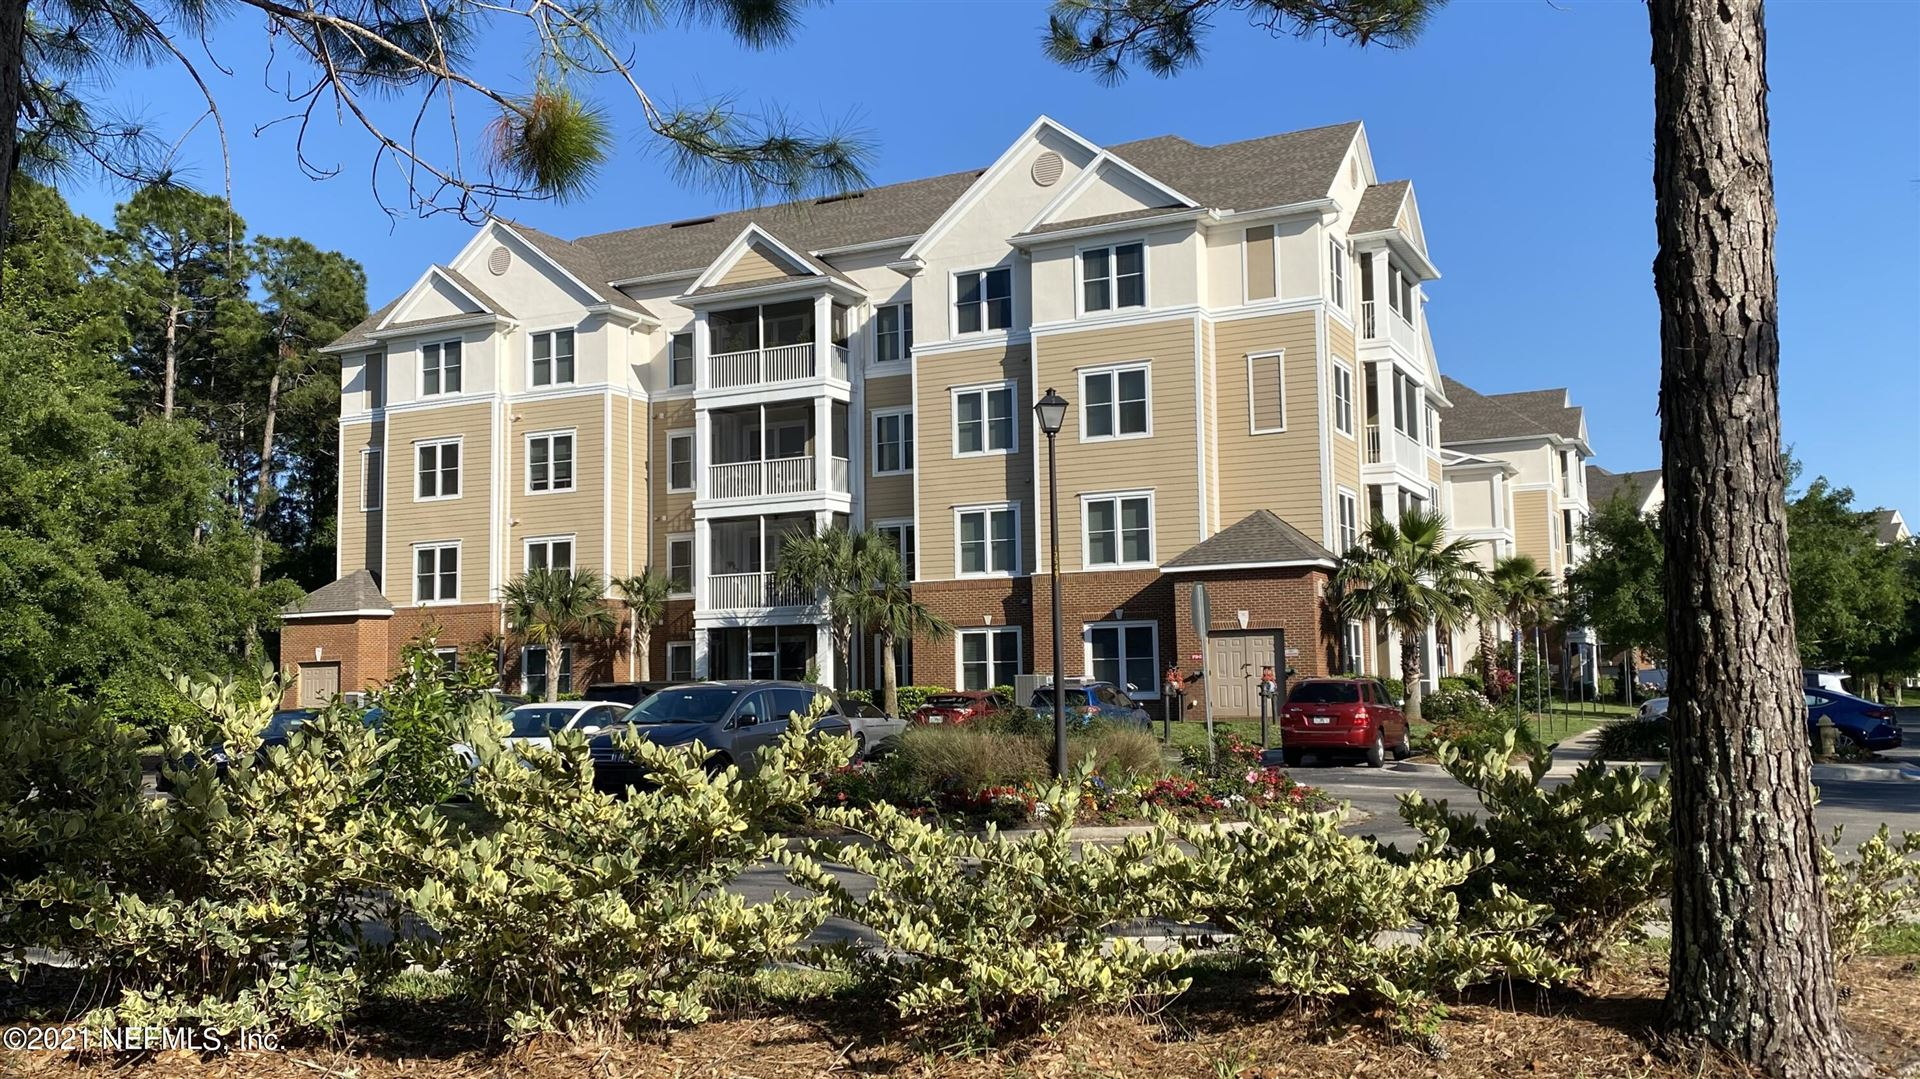 13364 BEACH BLVD #Unit No: 111, Jacksonville, FL 32224 - MLS#: 1107623